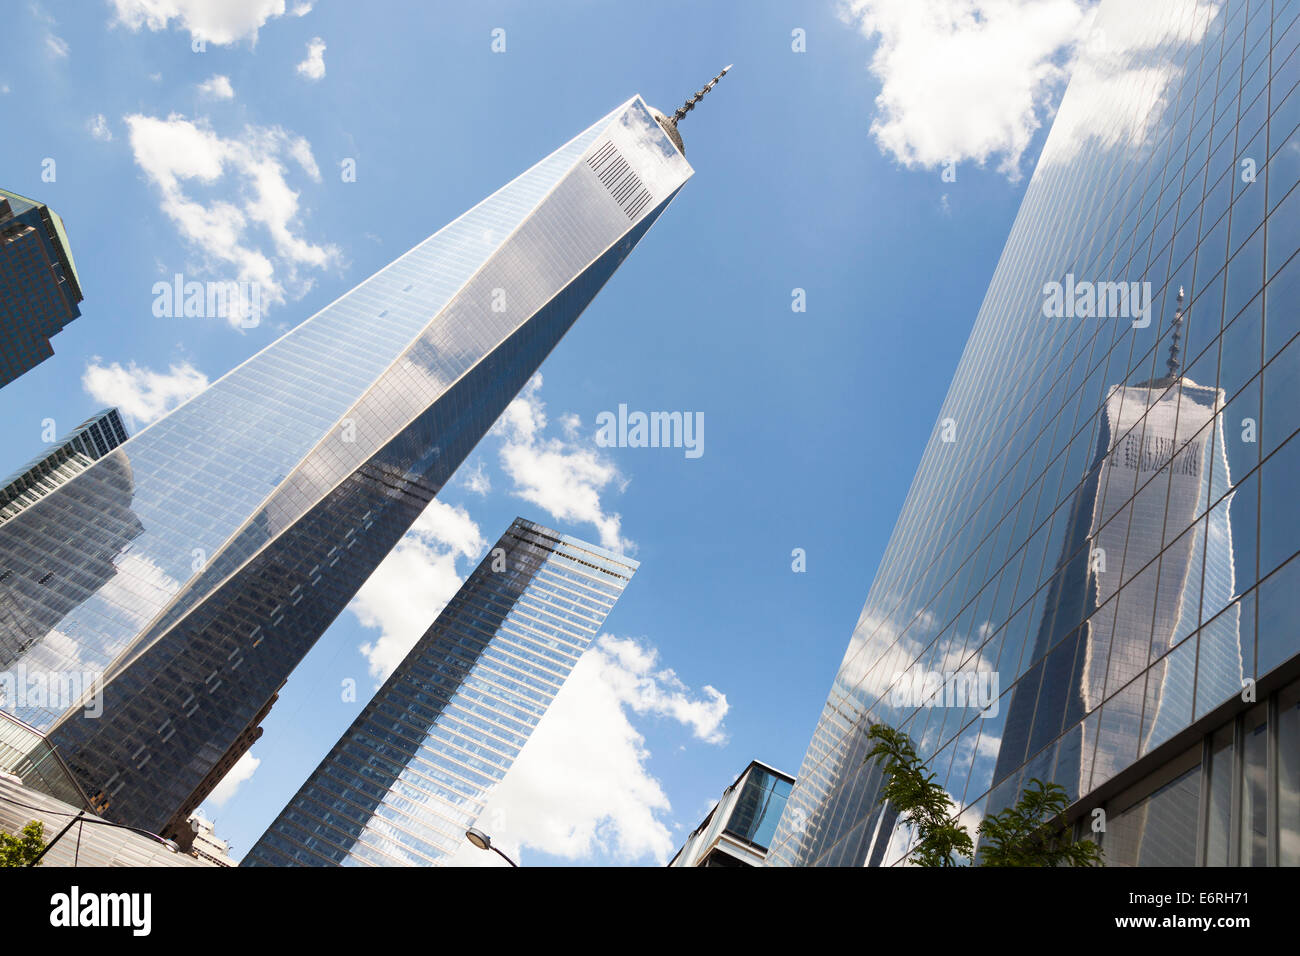 One World Trade Center also known as Tower 1 and Freedom Tower, Tower 7 and Tower 4, Manhattan, New York City, New - Stock Image